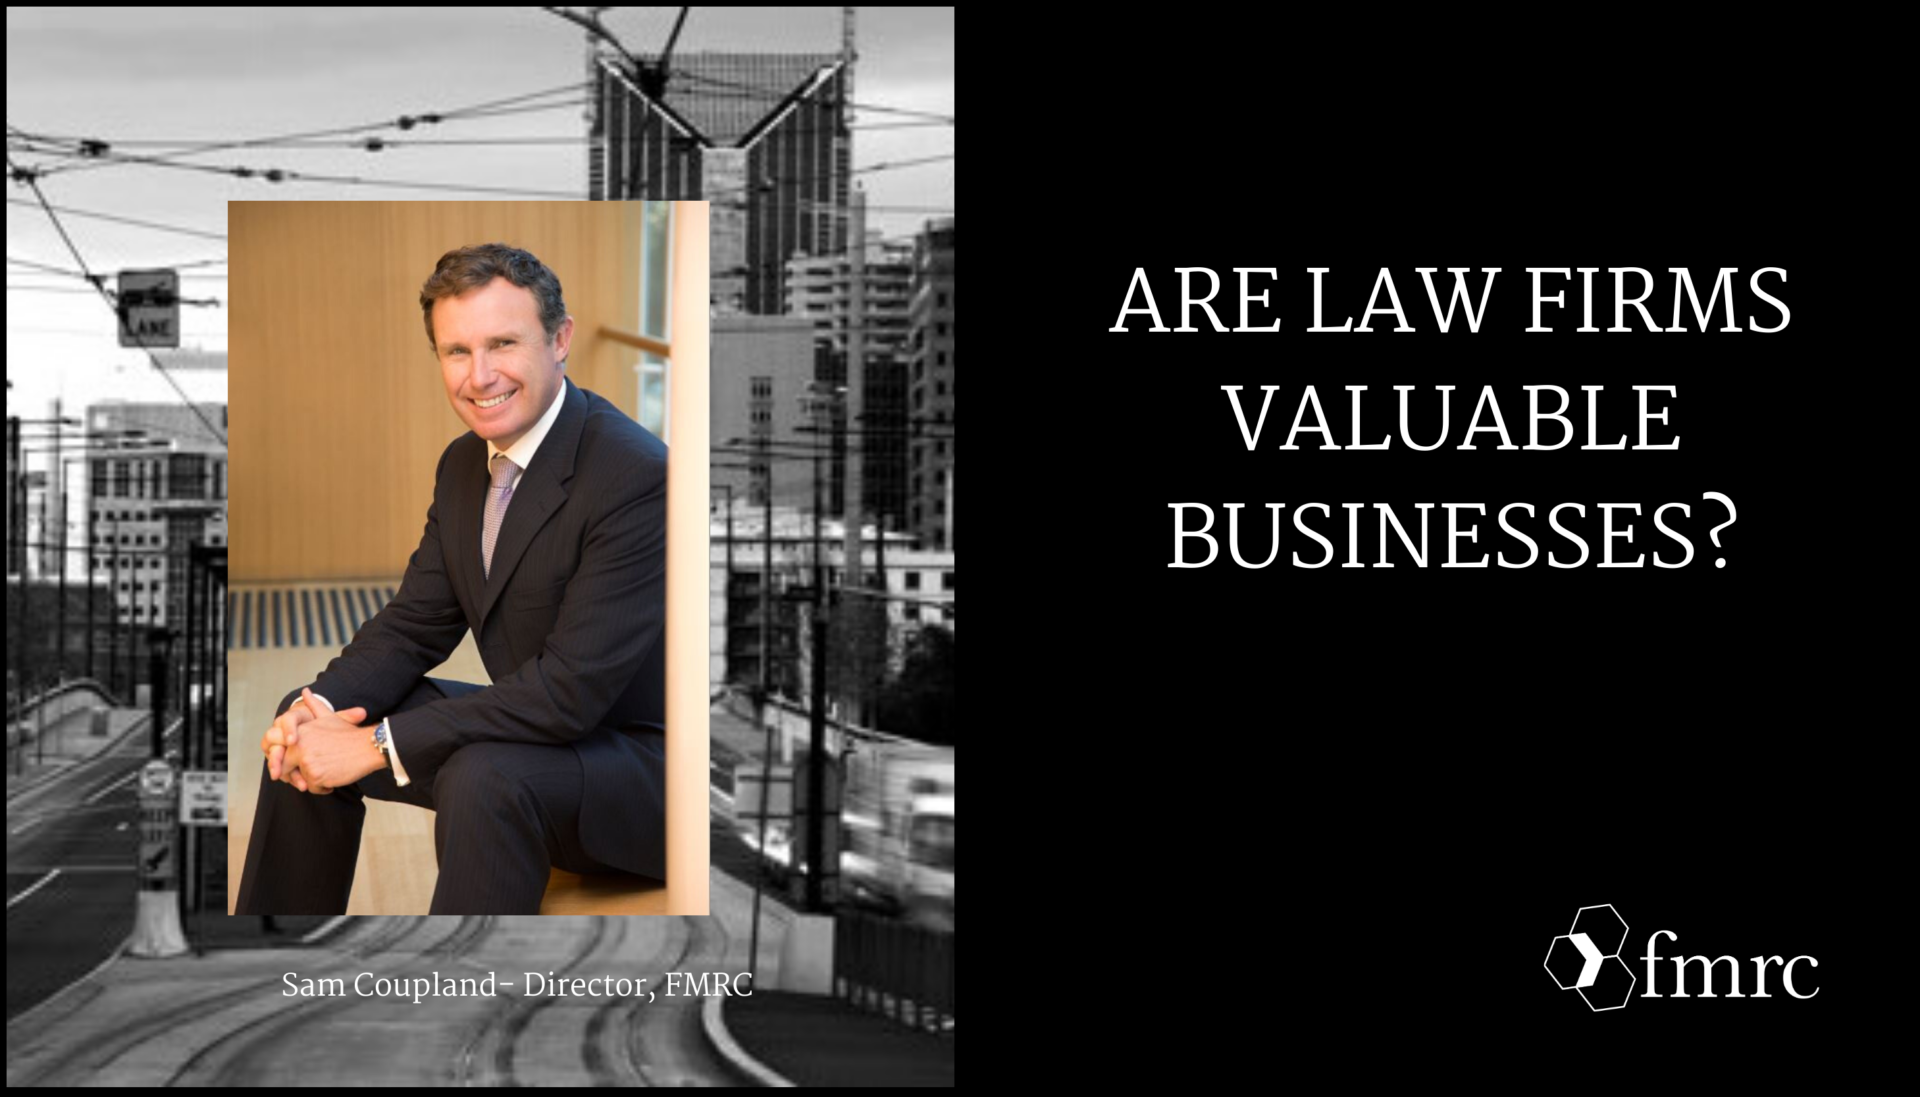 Are Law Firms Valuable Businesses?